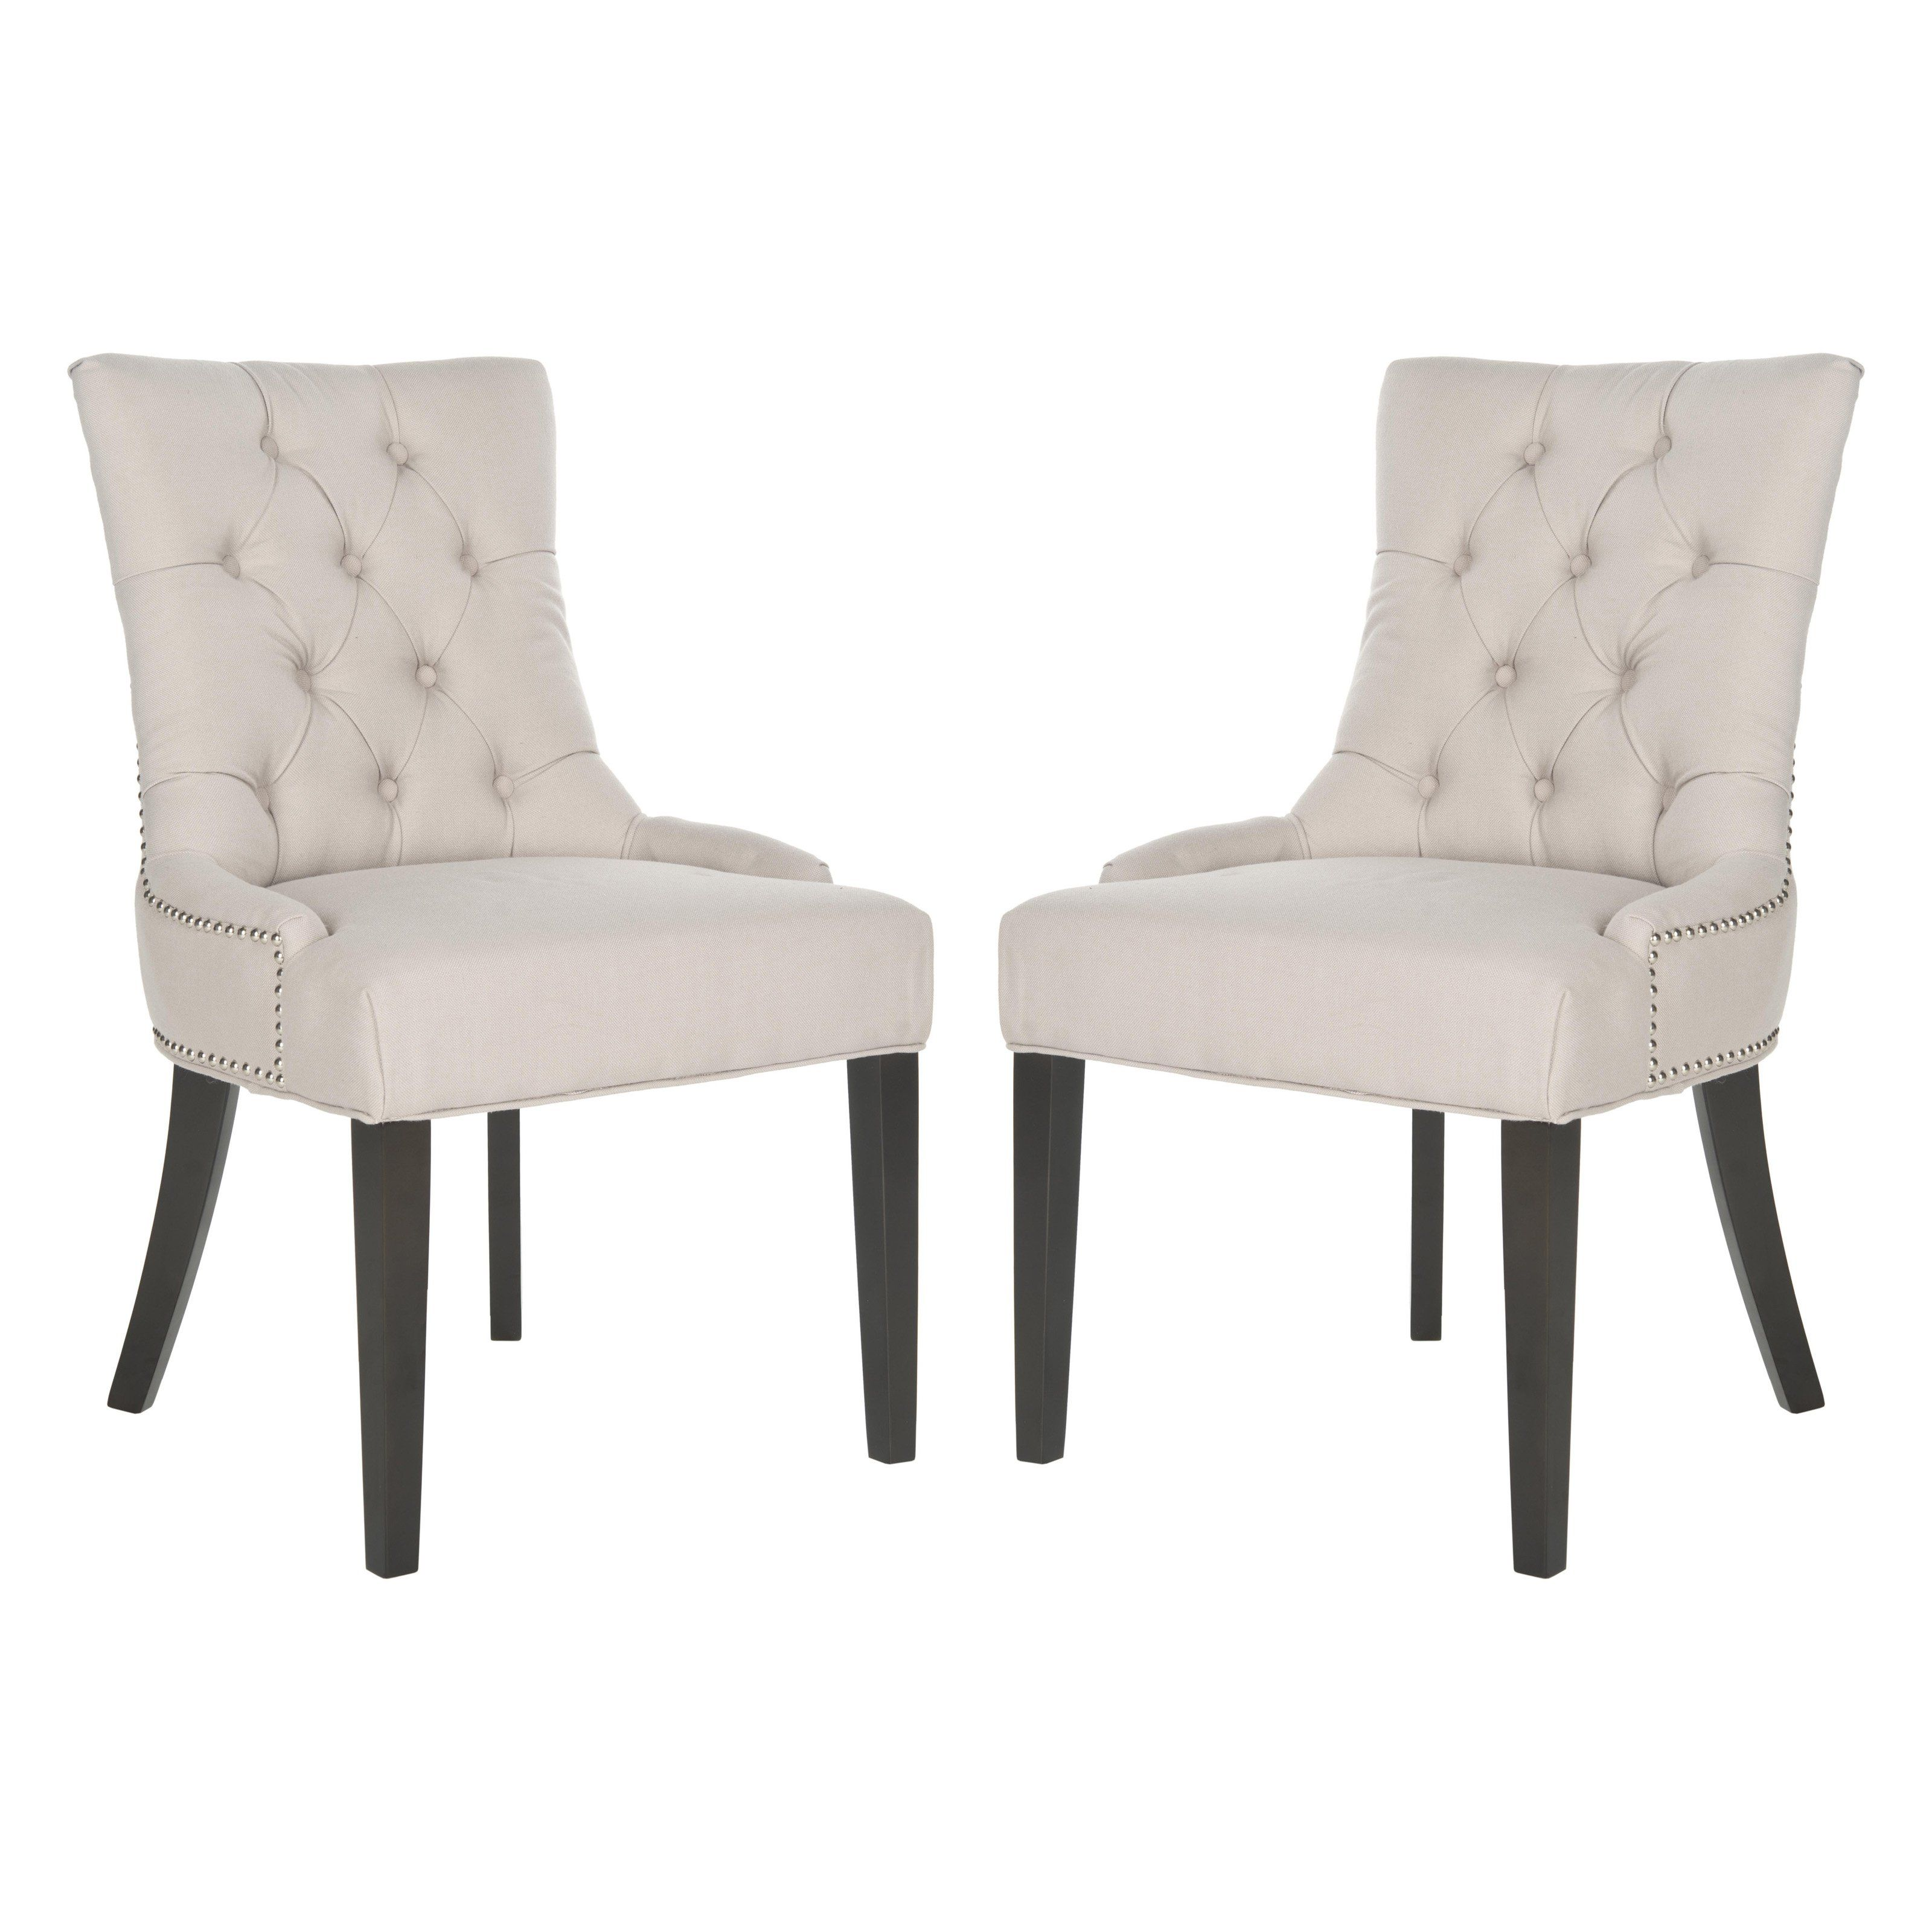 Safavieh Harlow Tufted Linen Ring Dining Chairs